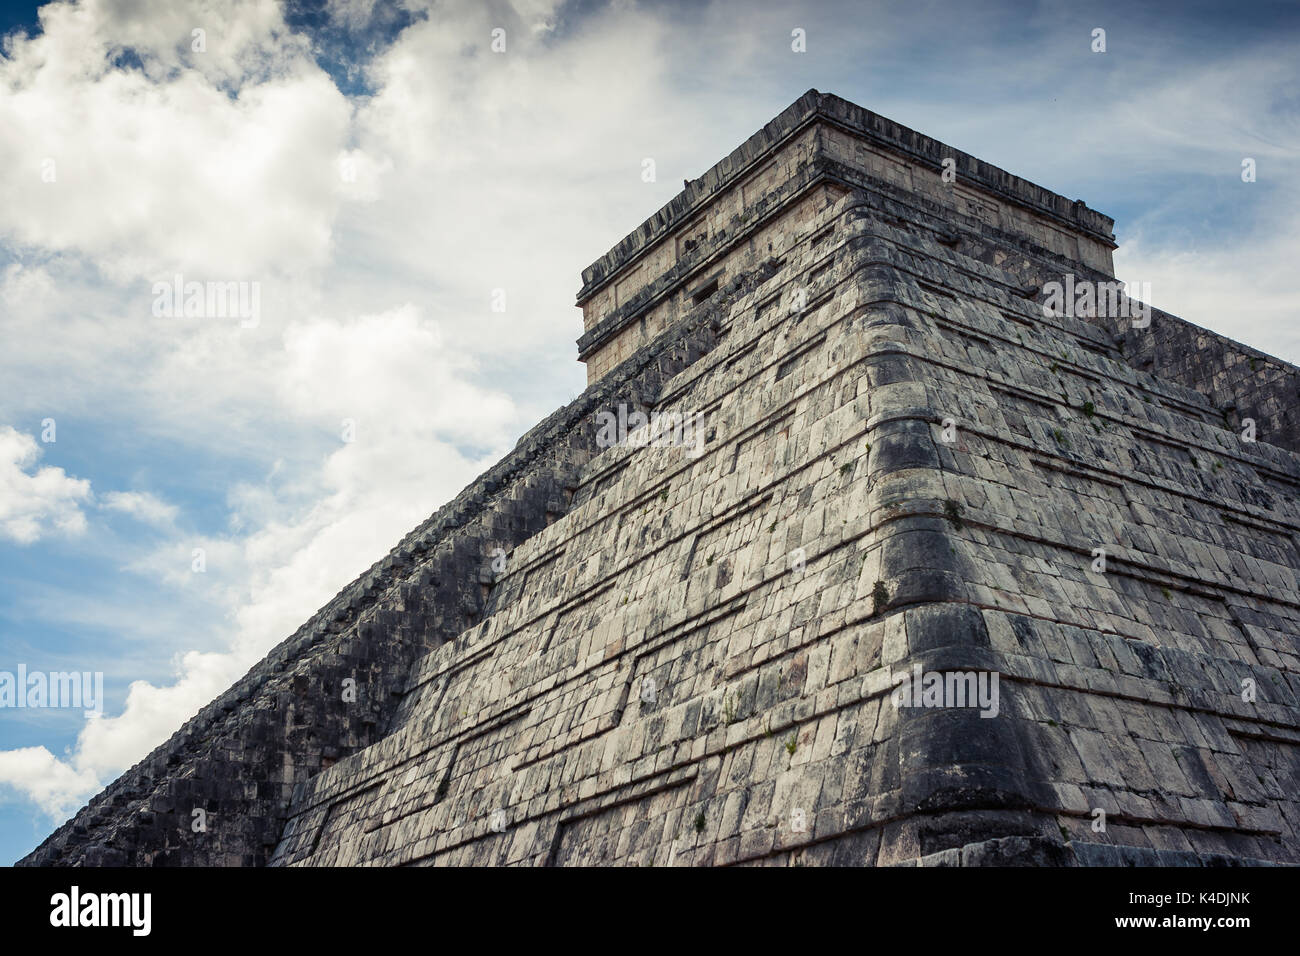 View of Kukulkan Pyramid (el Castillo) at the archaeological site of Chichen Itza, Yucatan, Mexico - Stock Image